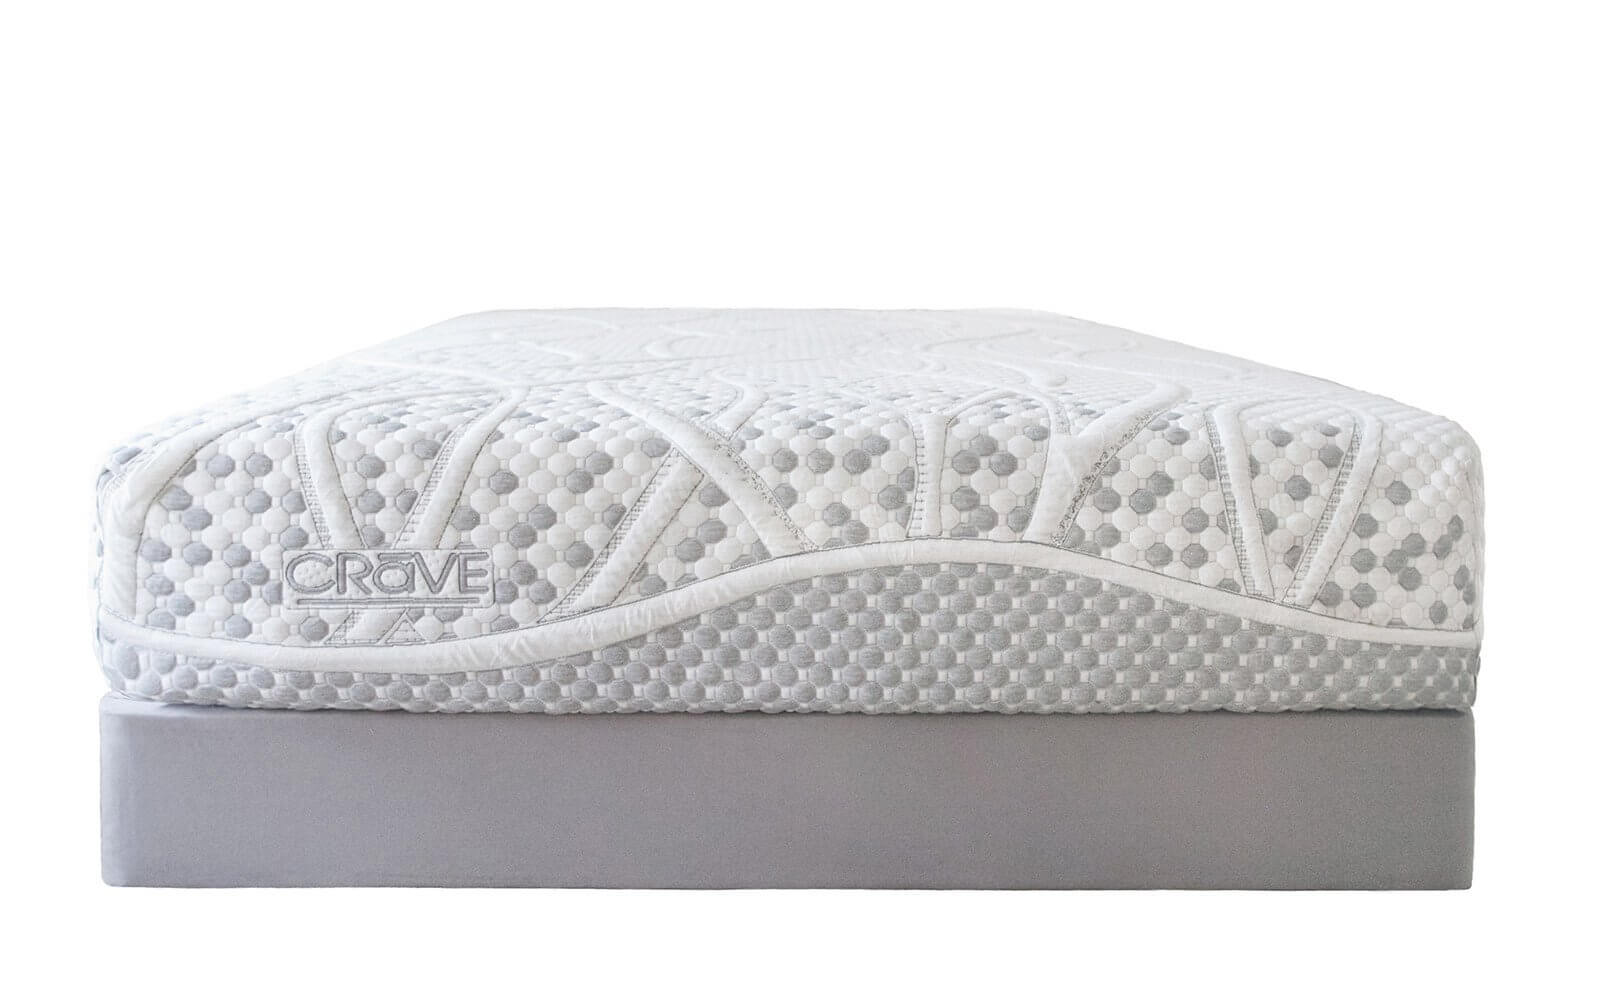 Crave Mattress Luxury Firm Hybrid Innerspring Mattress